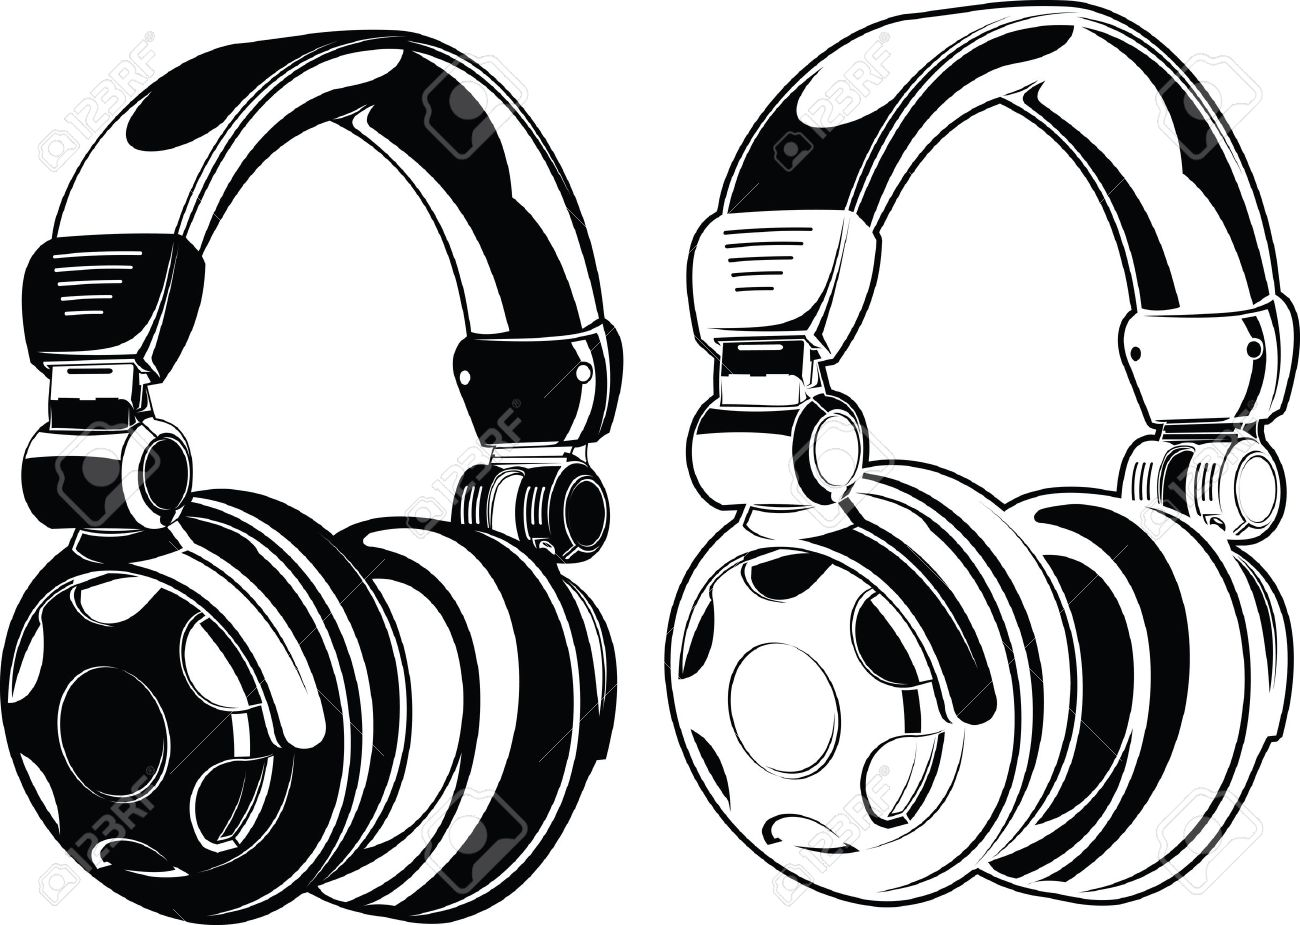 1300x925 Headphones One Color Drawings Royalty Free Cliparts, Vectors,